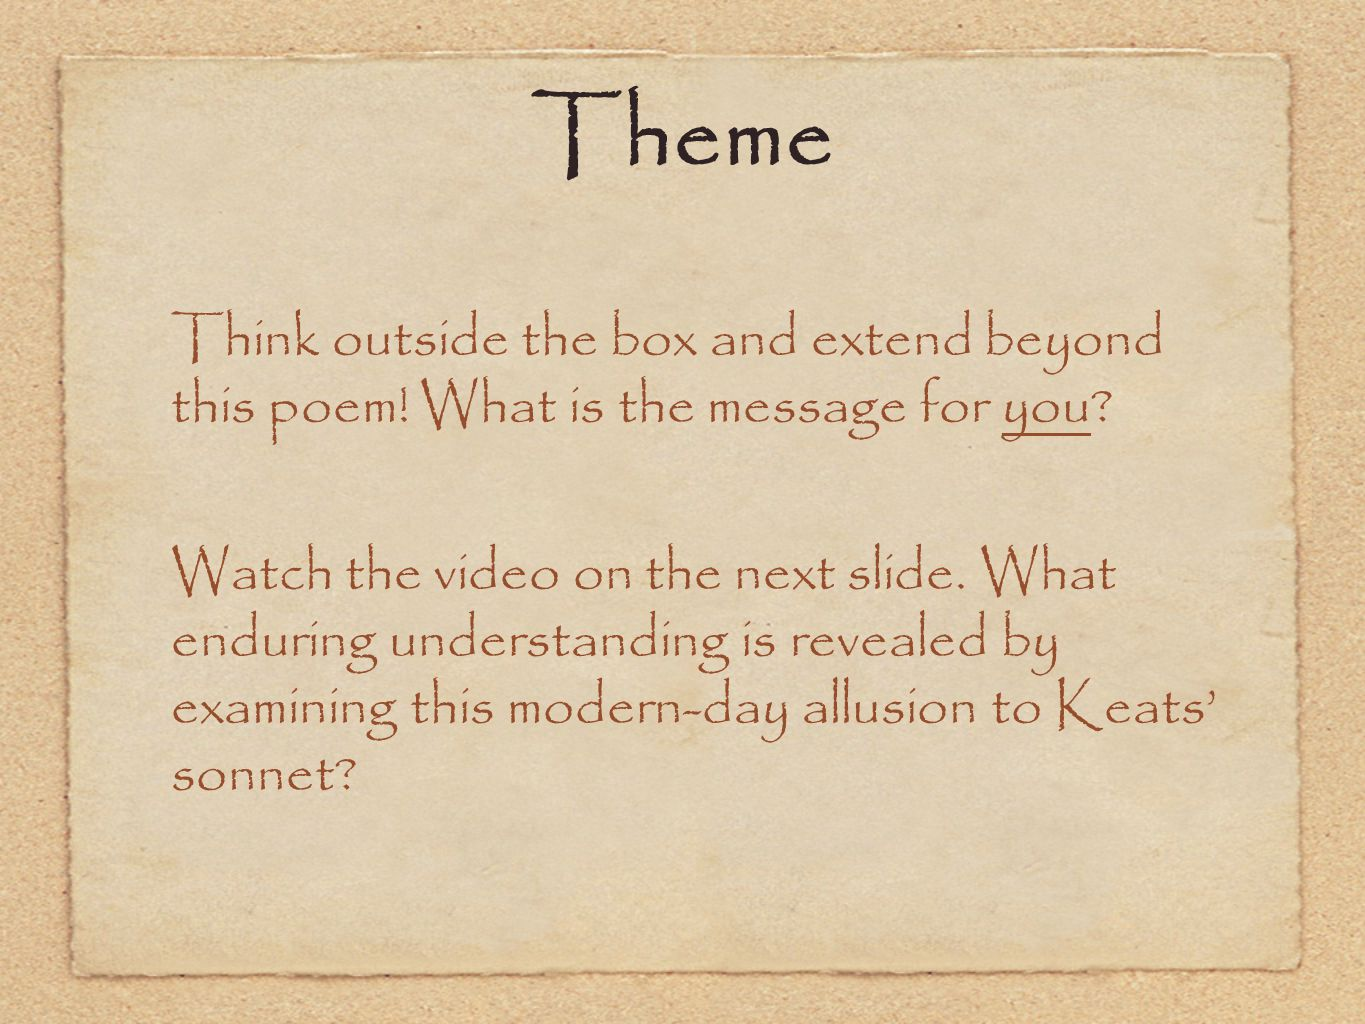 Theme Think outside the box and extend beyond this poem! What is the message for you